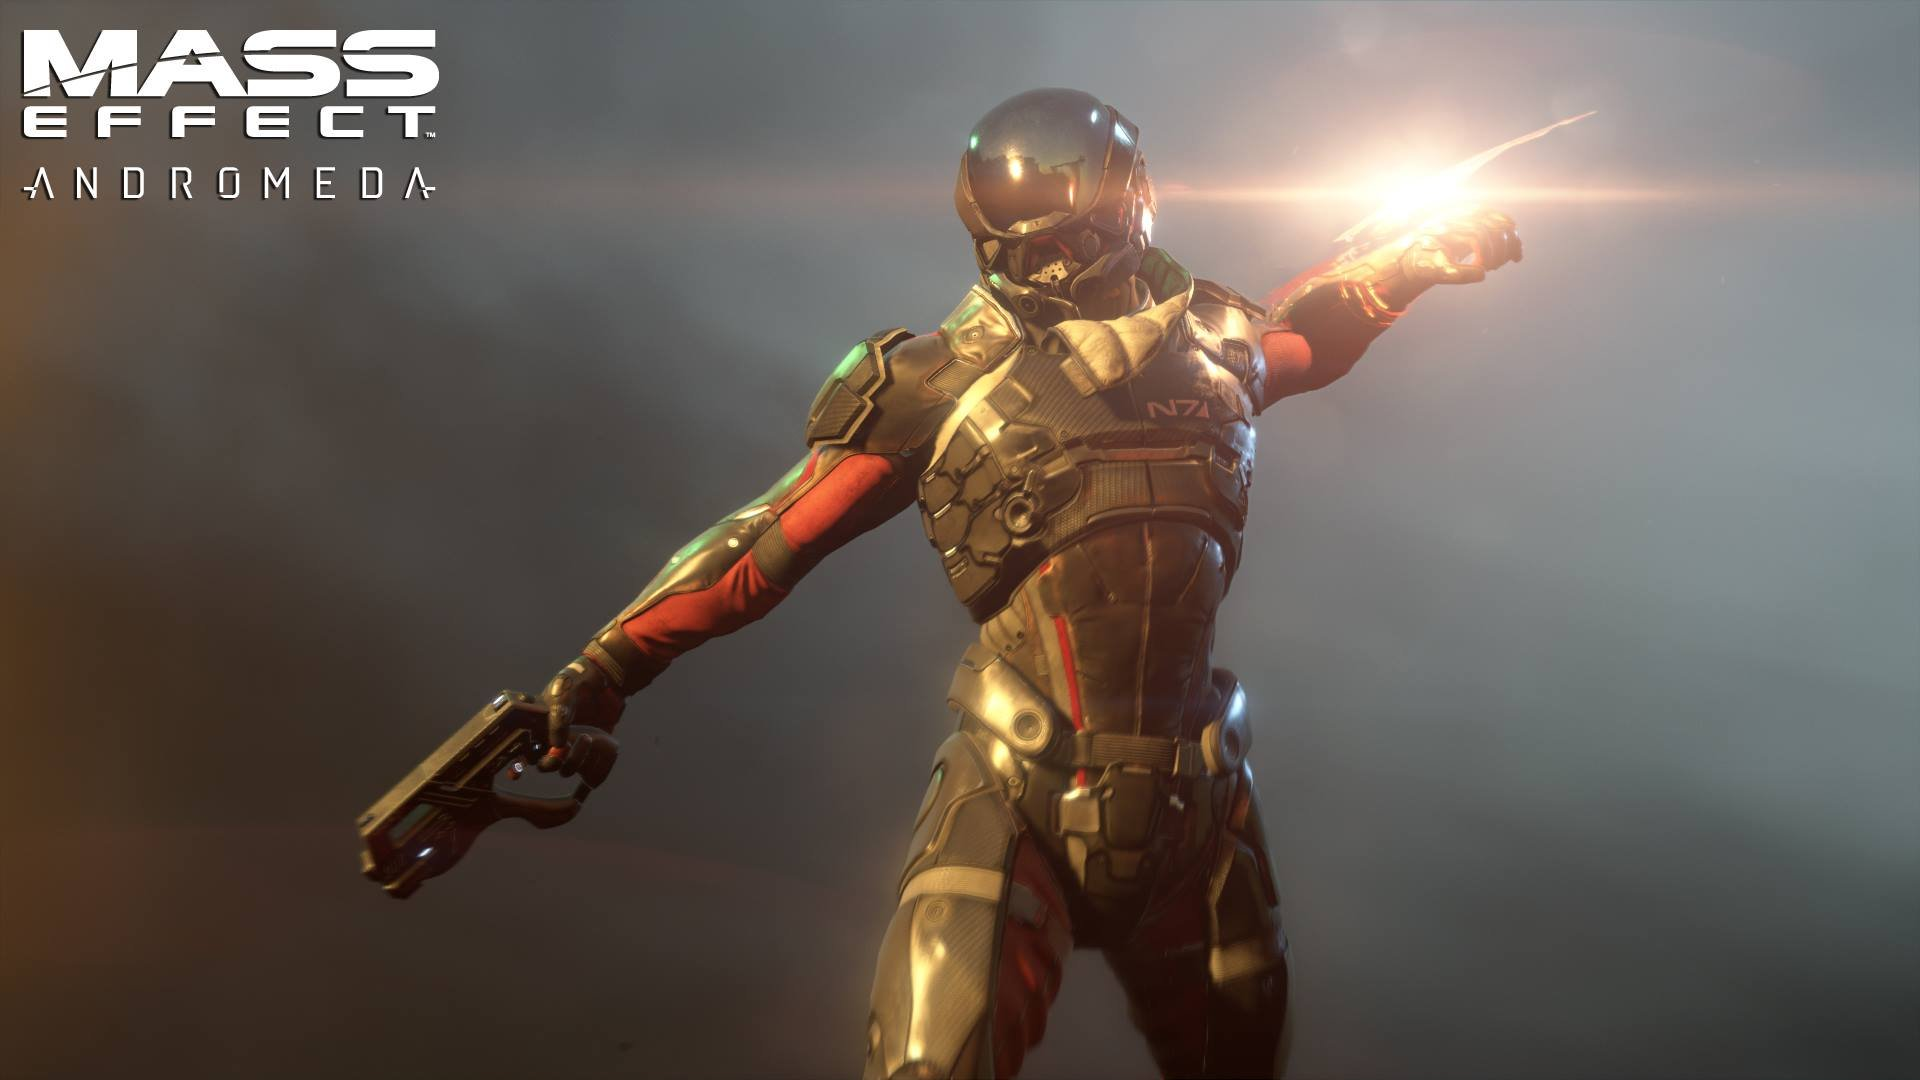 Mass Effect Andromeda Full Hd 3d Wallpapers: 3840x2160 Mass Effect Andromeda PC Game 4k HD 4k